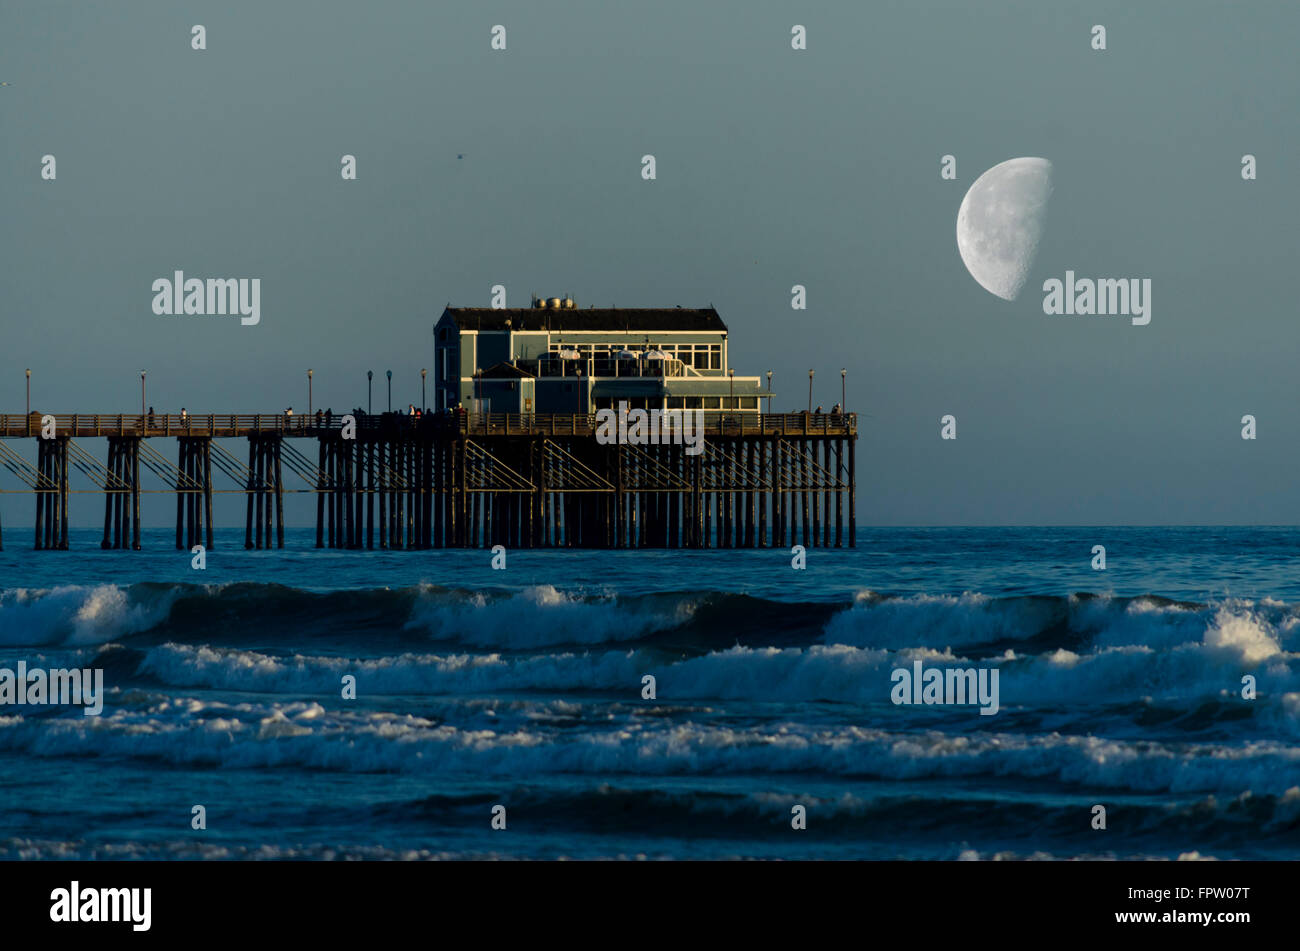 Pier in background with large moon at end of pier, ocean waves crashing into shore. Stock Photo